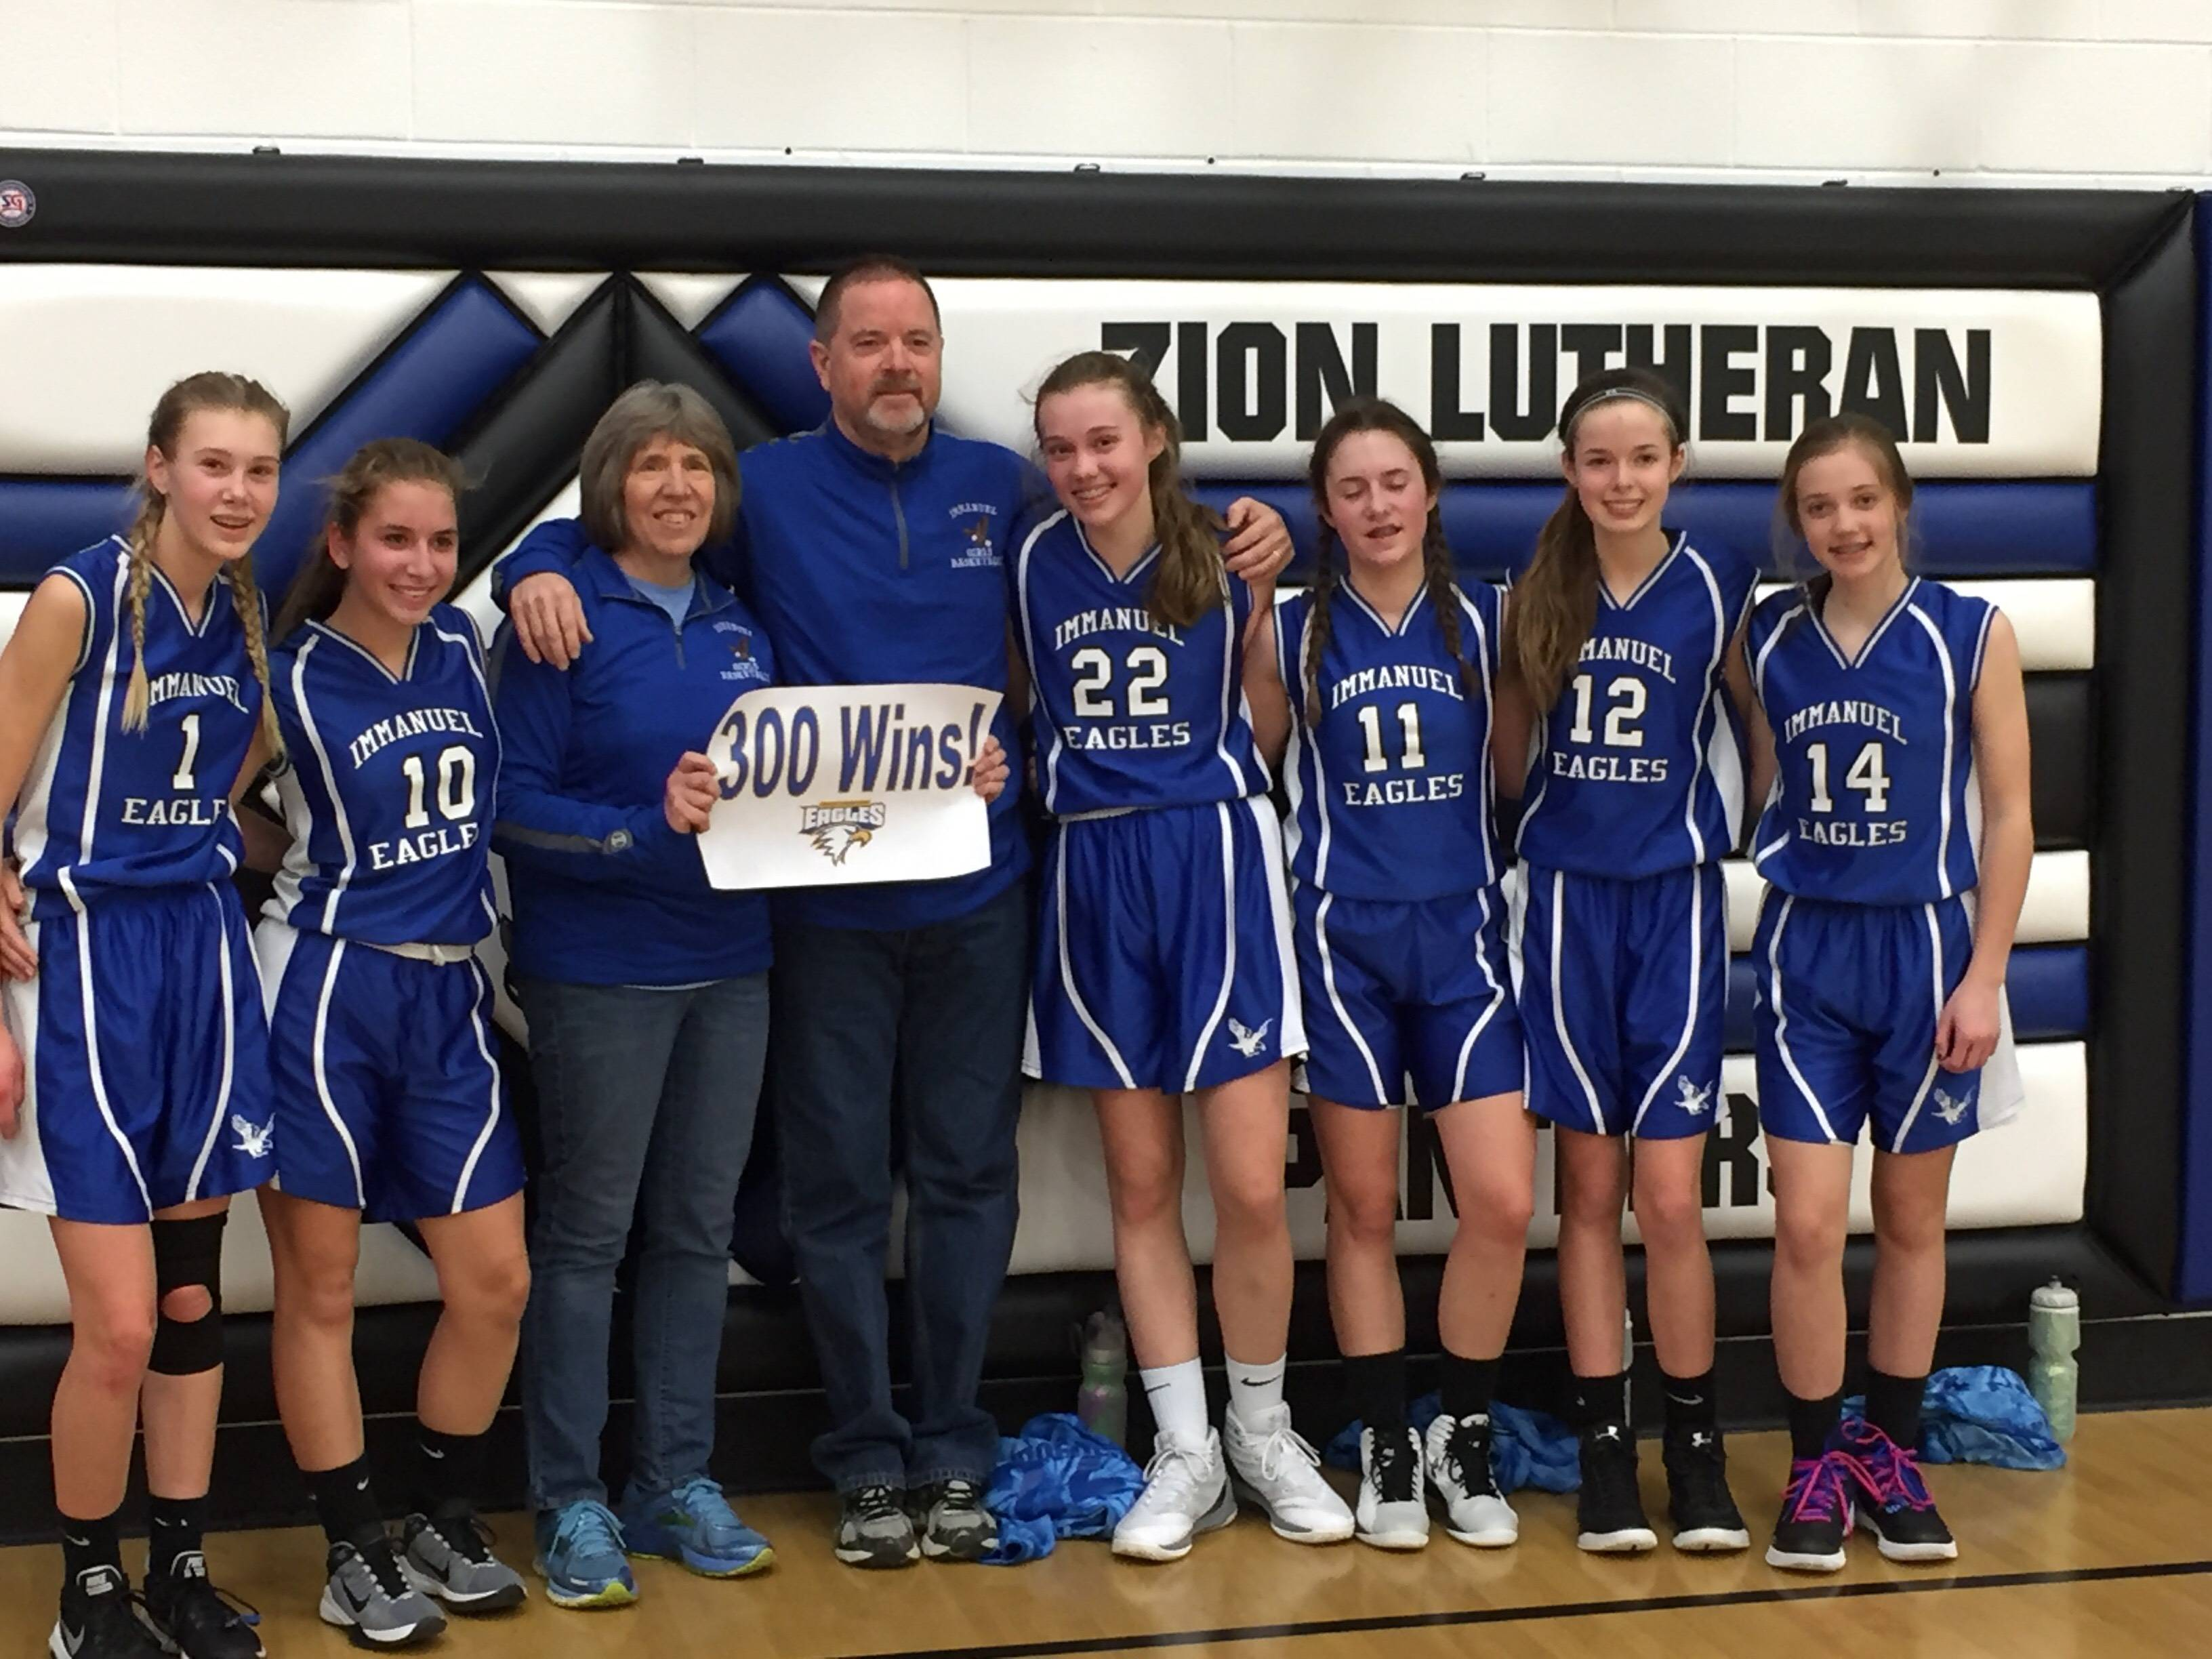 On Feb. 3, the Immanuel Eagles girls' varsity basketball team join coaches Sharon Dalpini and Steve Mudd, center, who had their 300th coaching win.